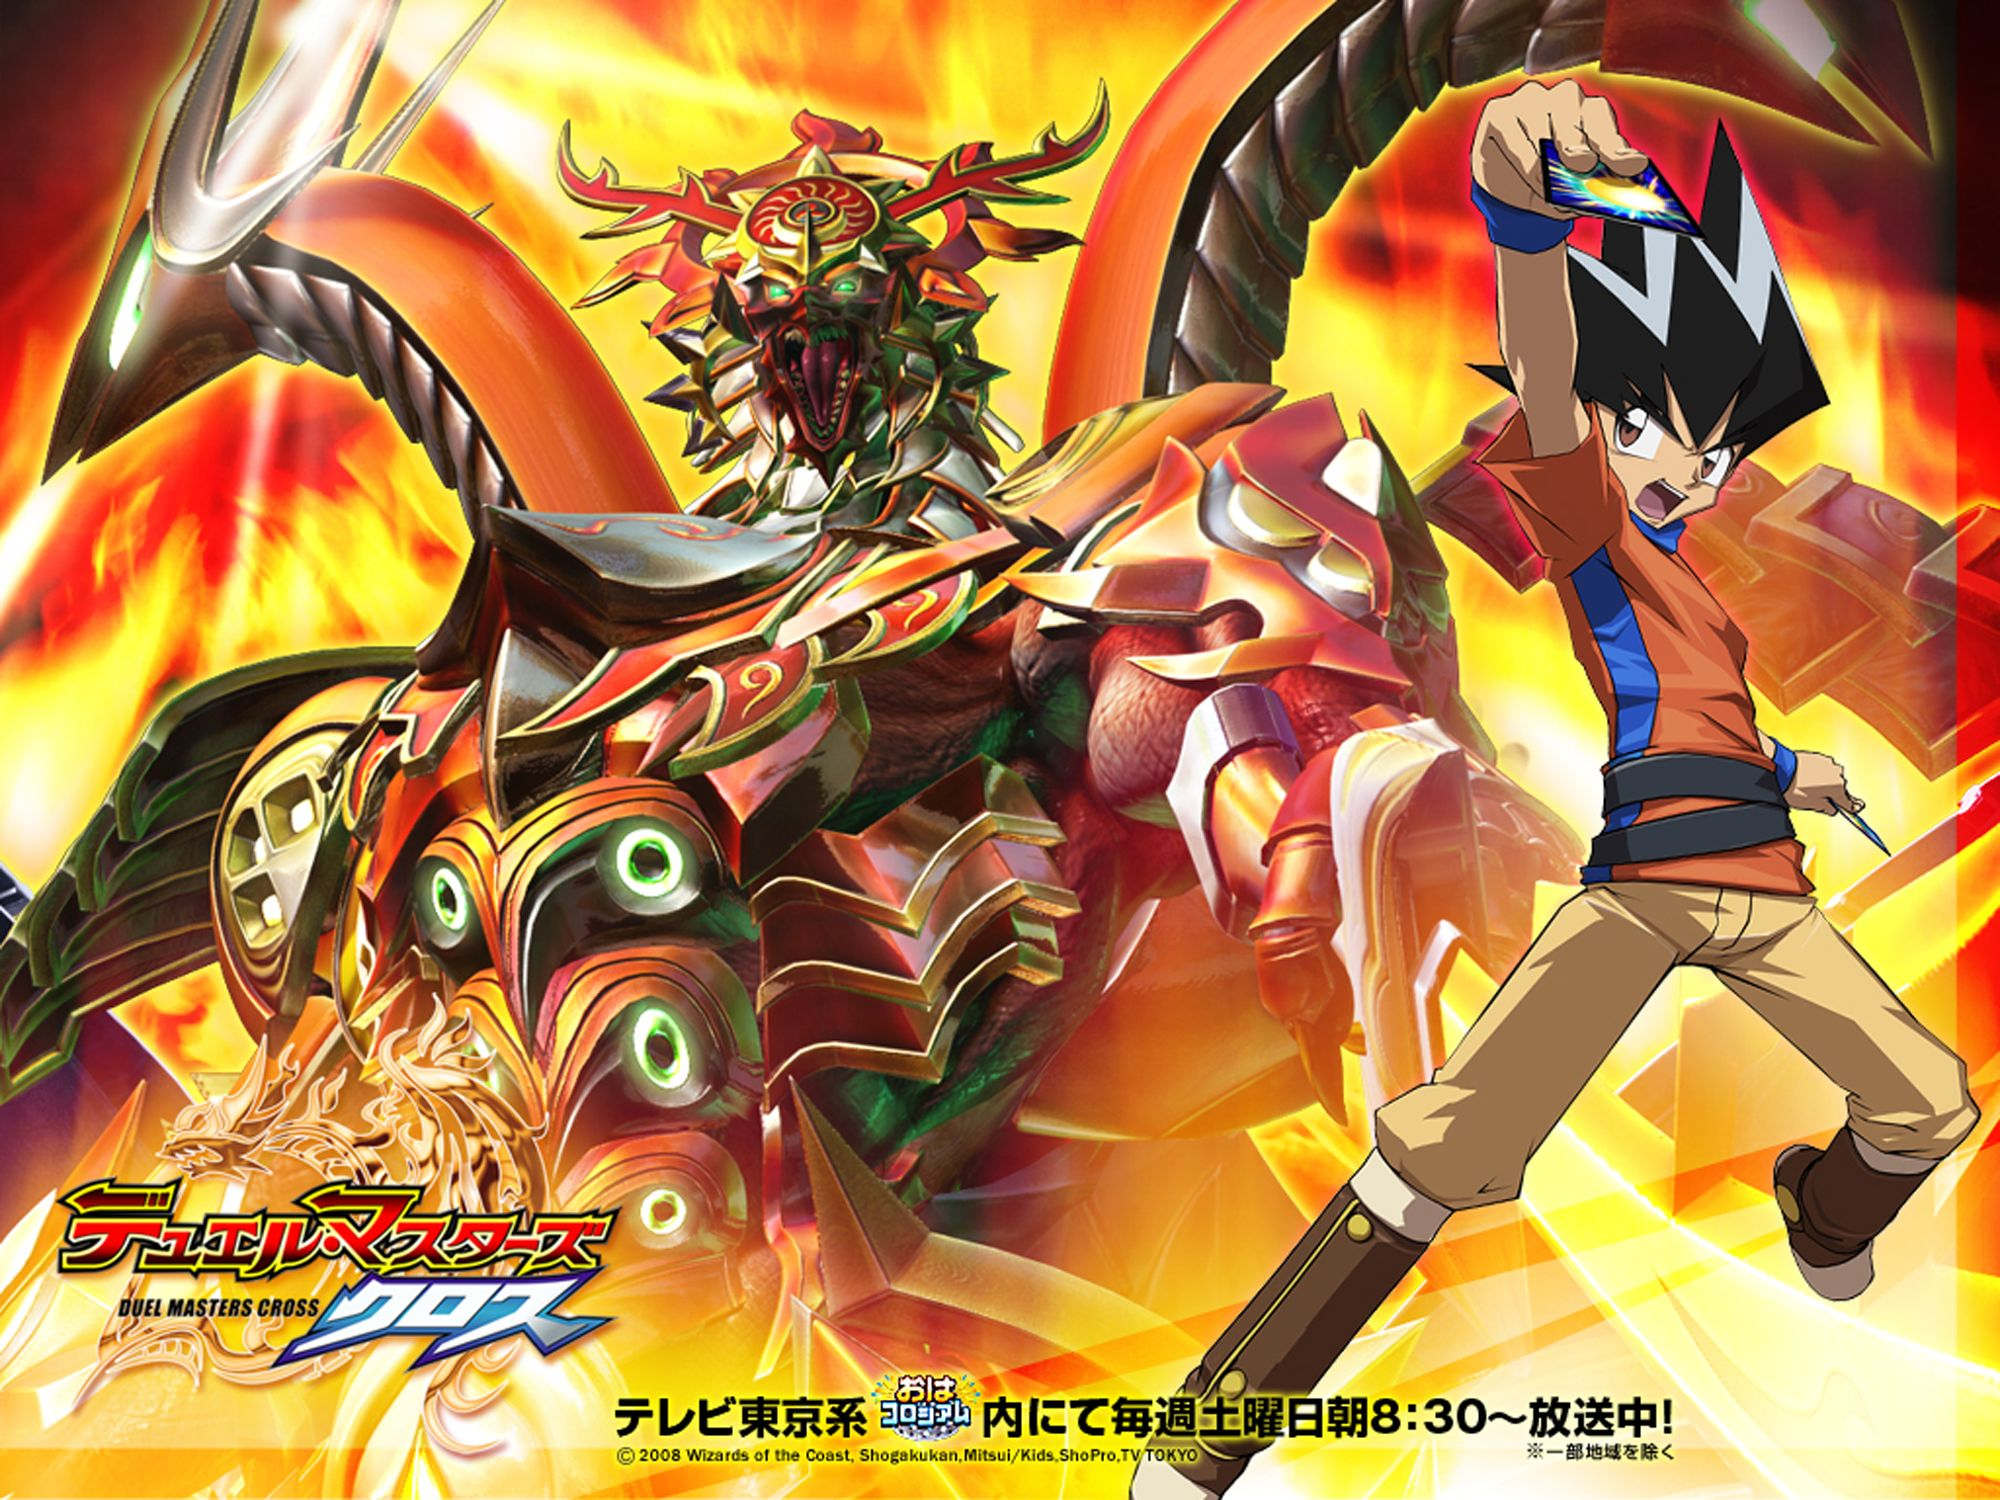 Duel Masters Bolshack Dragon Hd Wallpaper Duel Masters Bolshack Dragon Hd Wallpaper Are Availble Here In Large